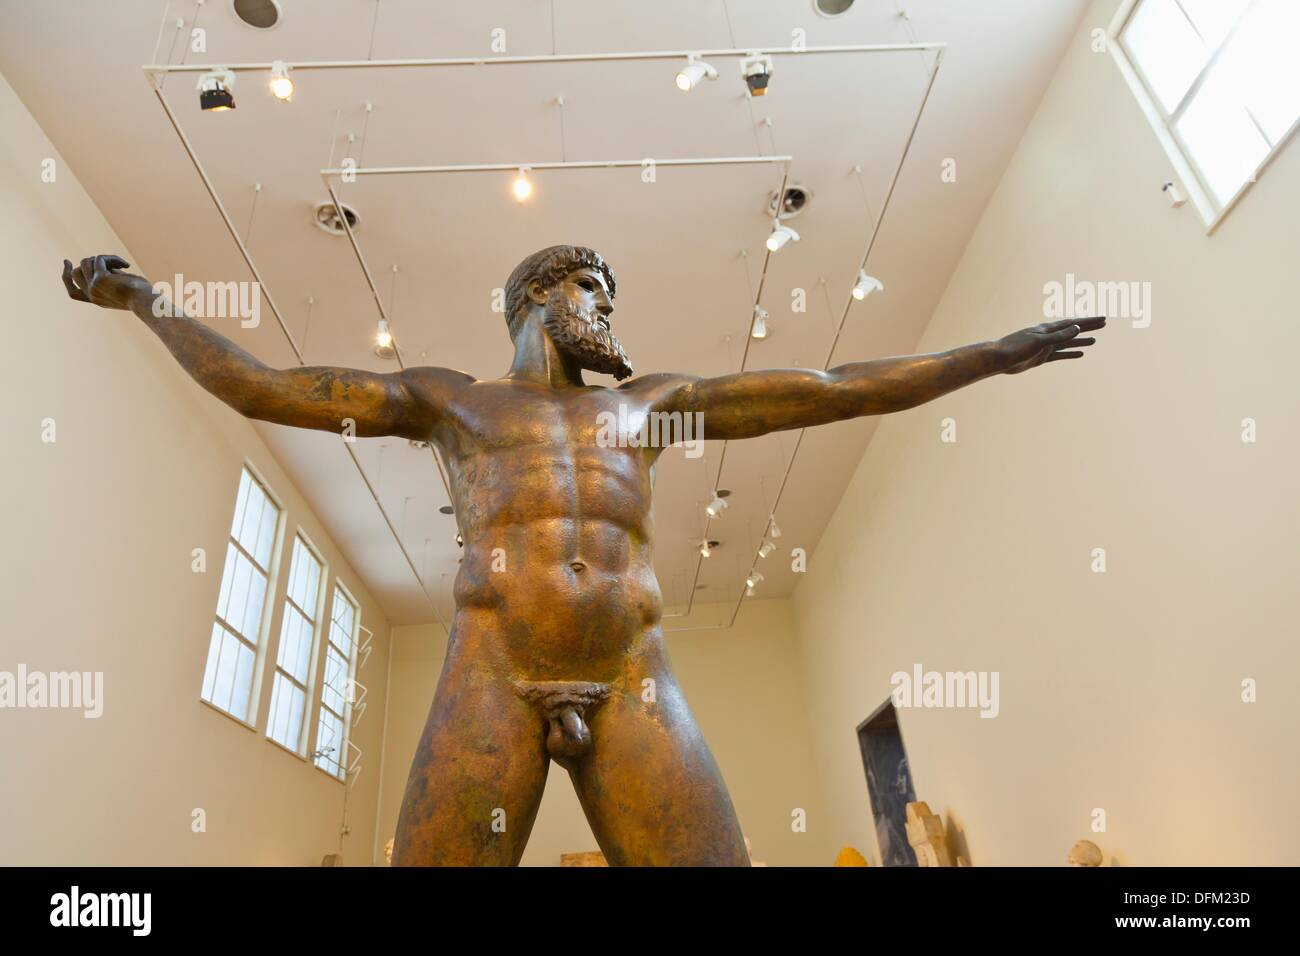 Artemision Bronze ancient Greek sculpture in the National Archaeological Museum, Athens, Greece - Stock Image